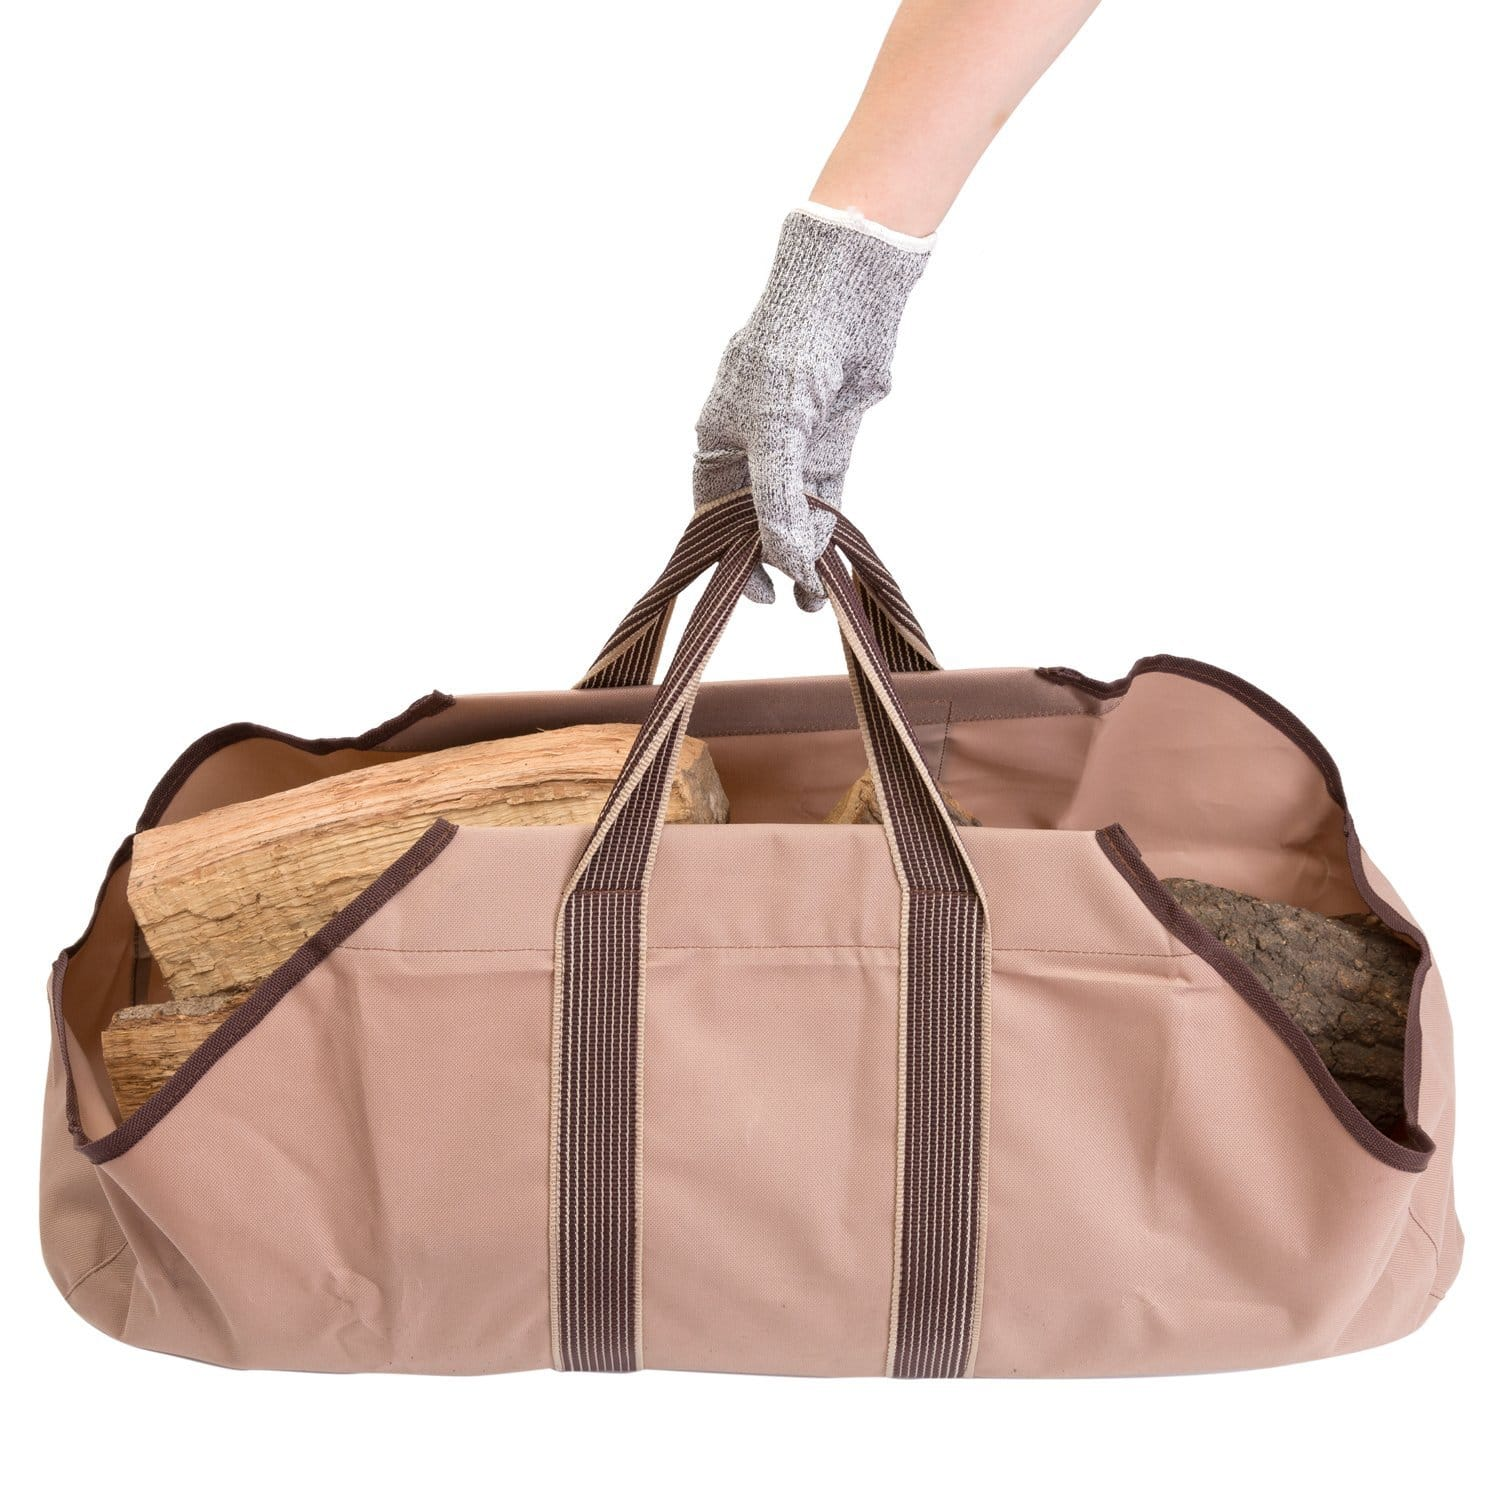 HollyHOME Heavy Duty Canvas Firewood Log Tote, Large Capacity $5.99